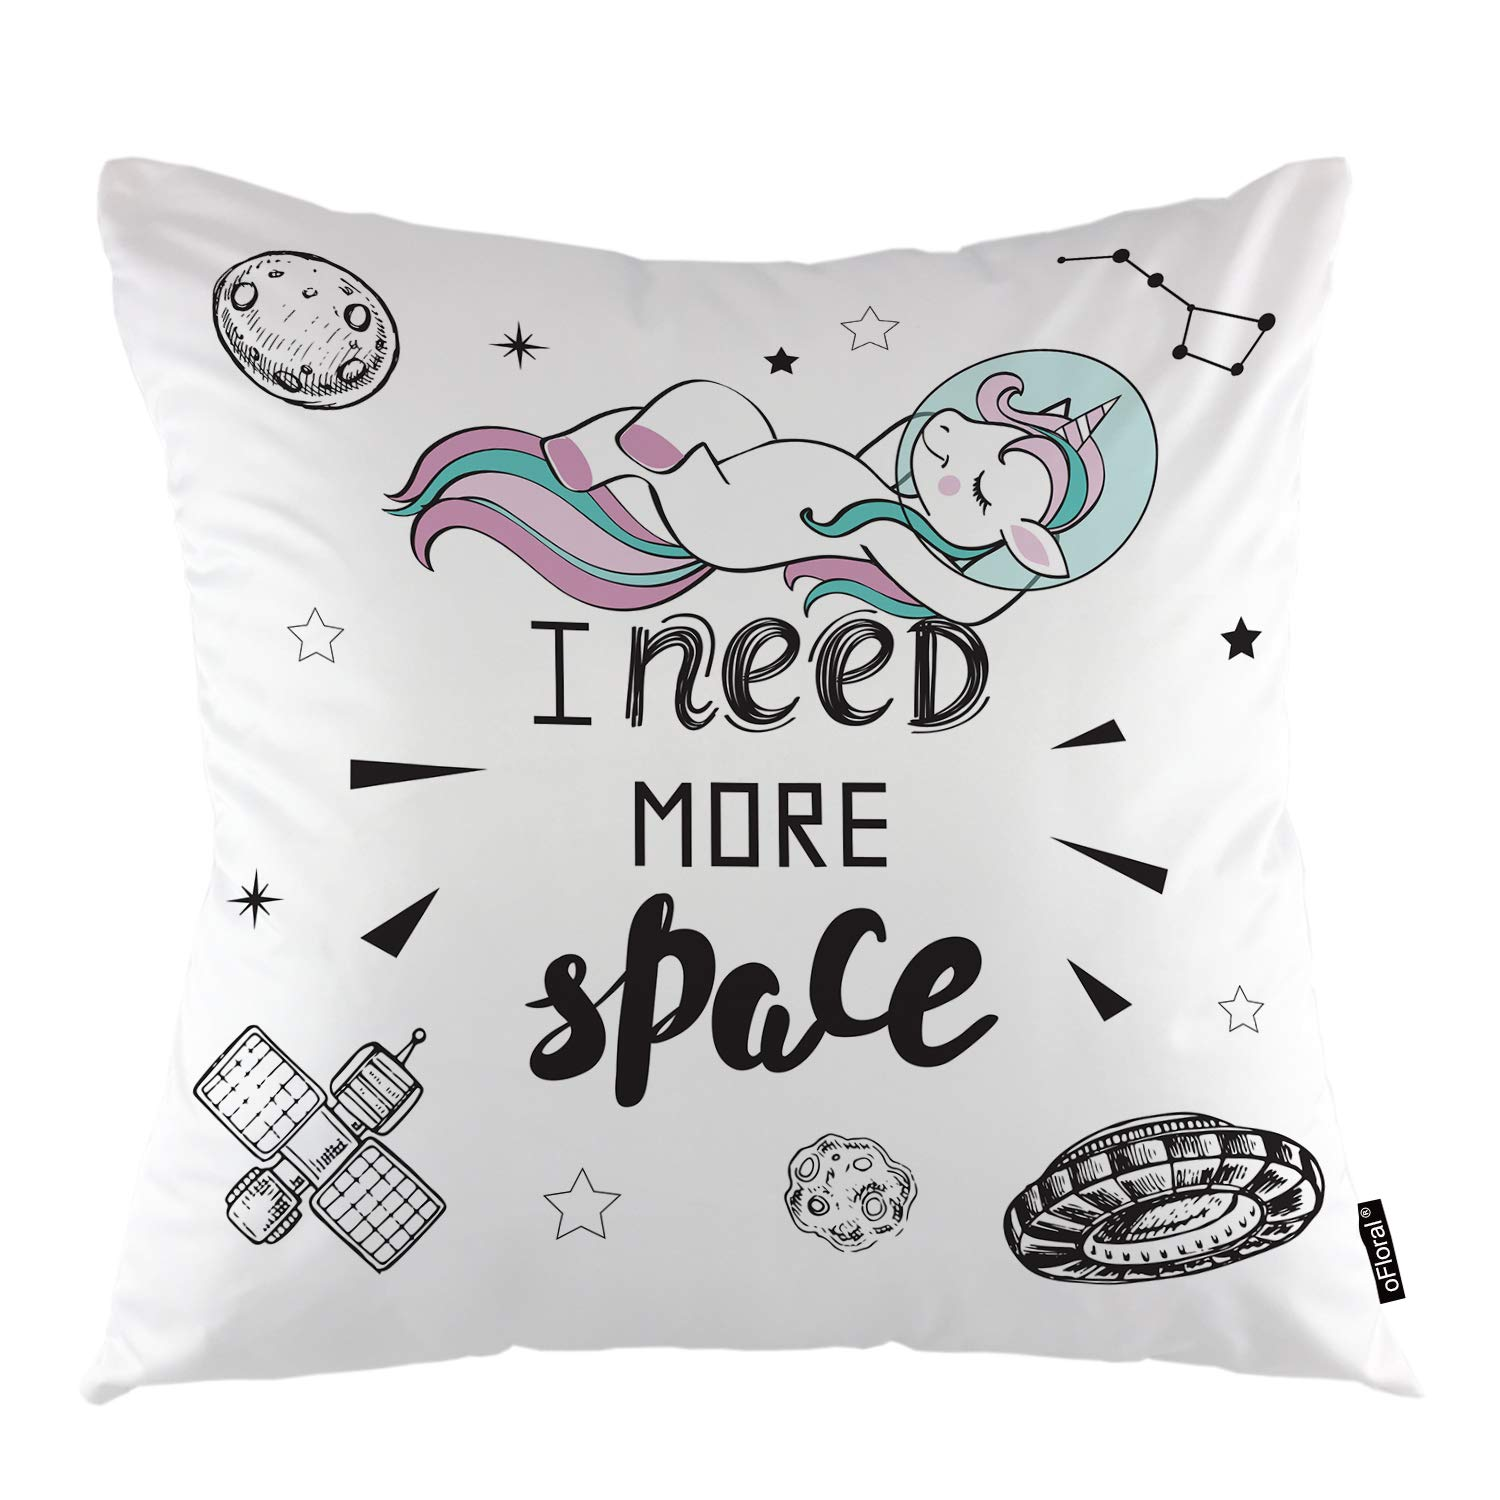 oFloral Unicorn Throw Pillow Cover Cute Pink Hair Girl Unicorn in Space Decorative Square Pillow Case 18X18 Pillowcase Home Decor for Sofa Bedroom